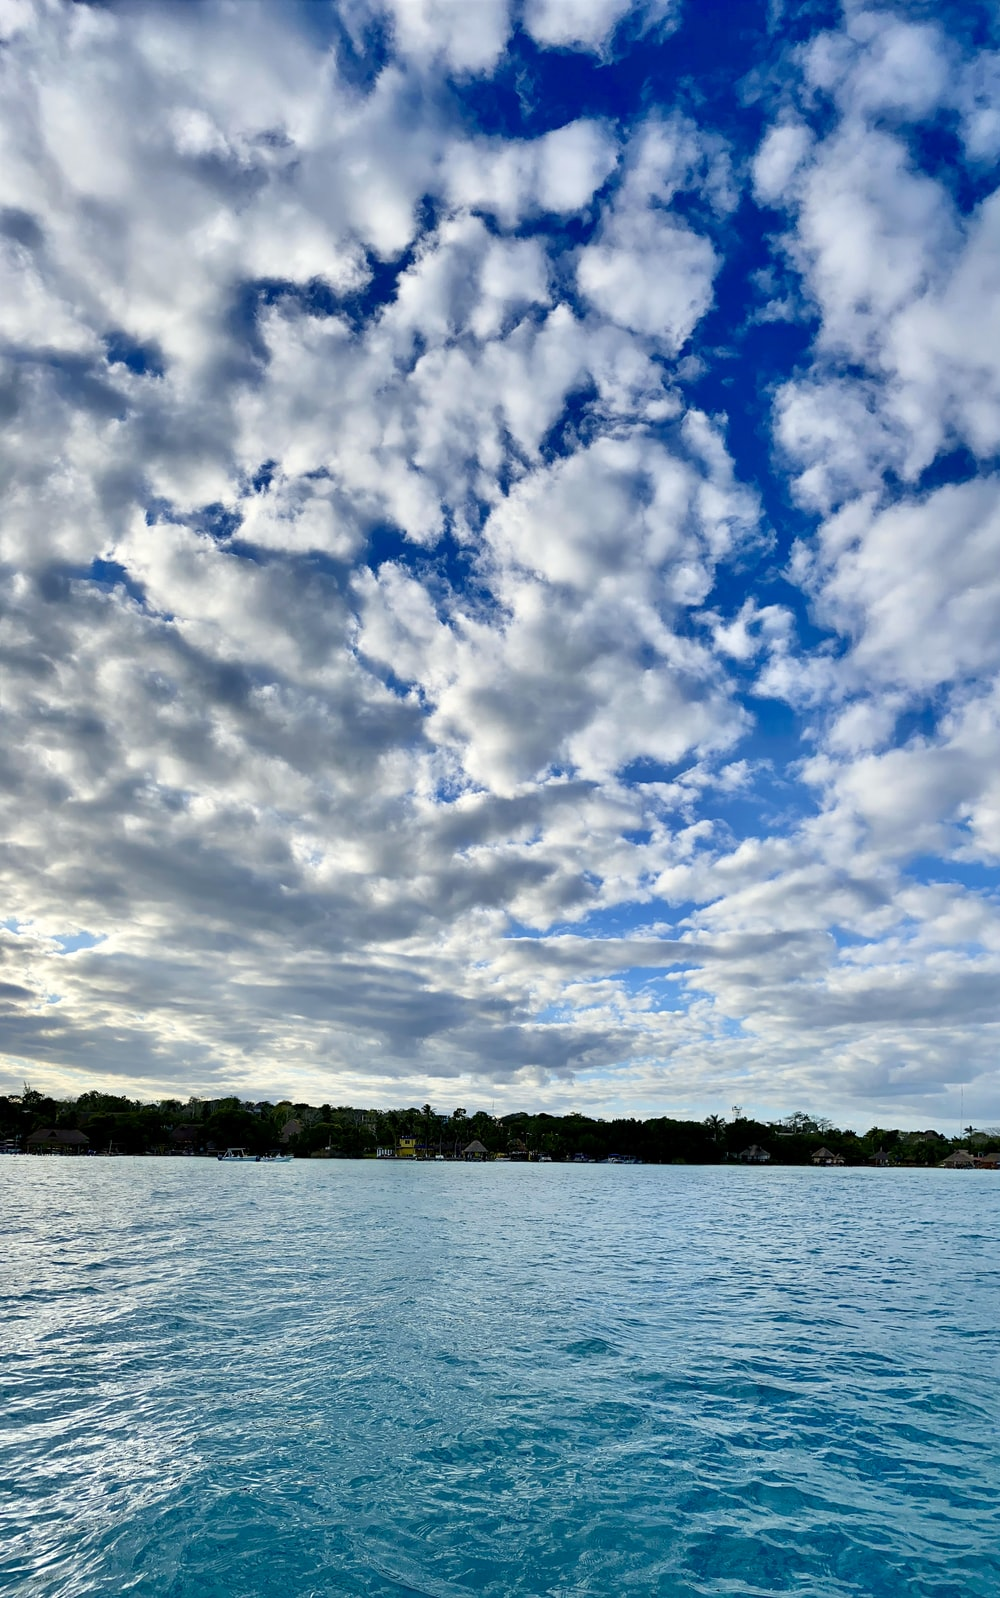 body of water under blue sky and white clouds during daytime